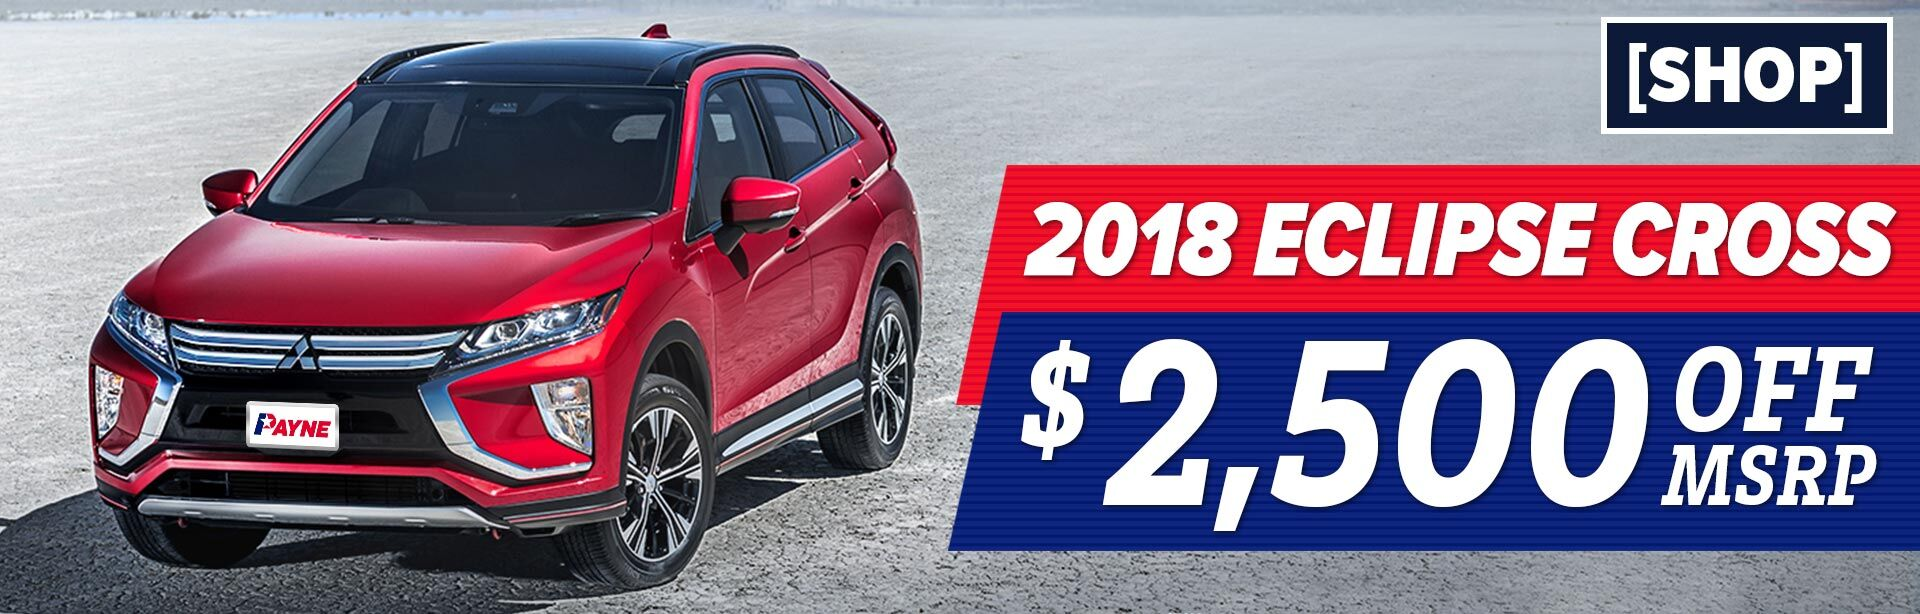 august 2018 Eclipse cross